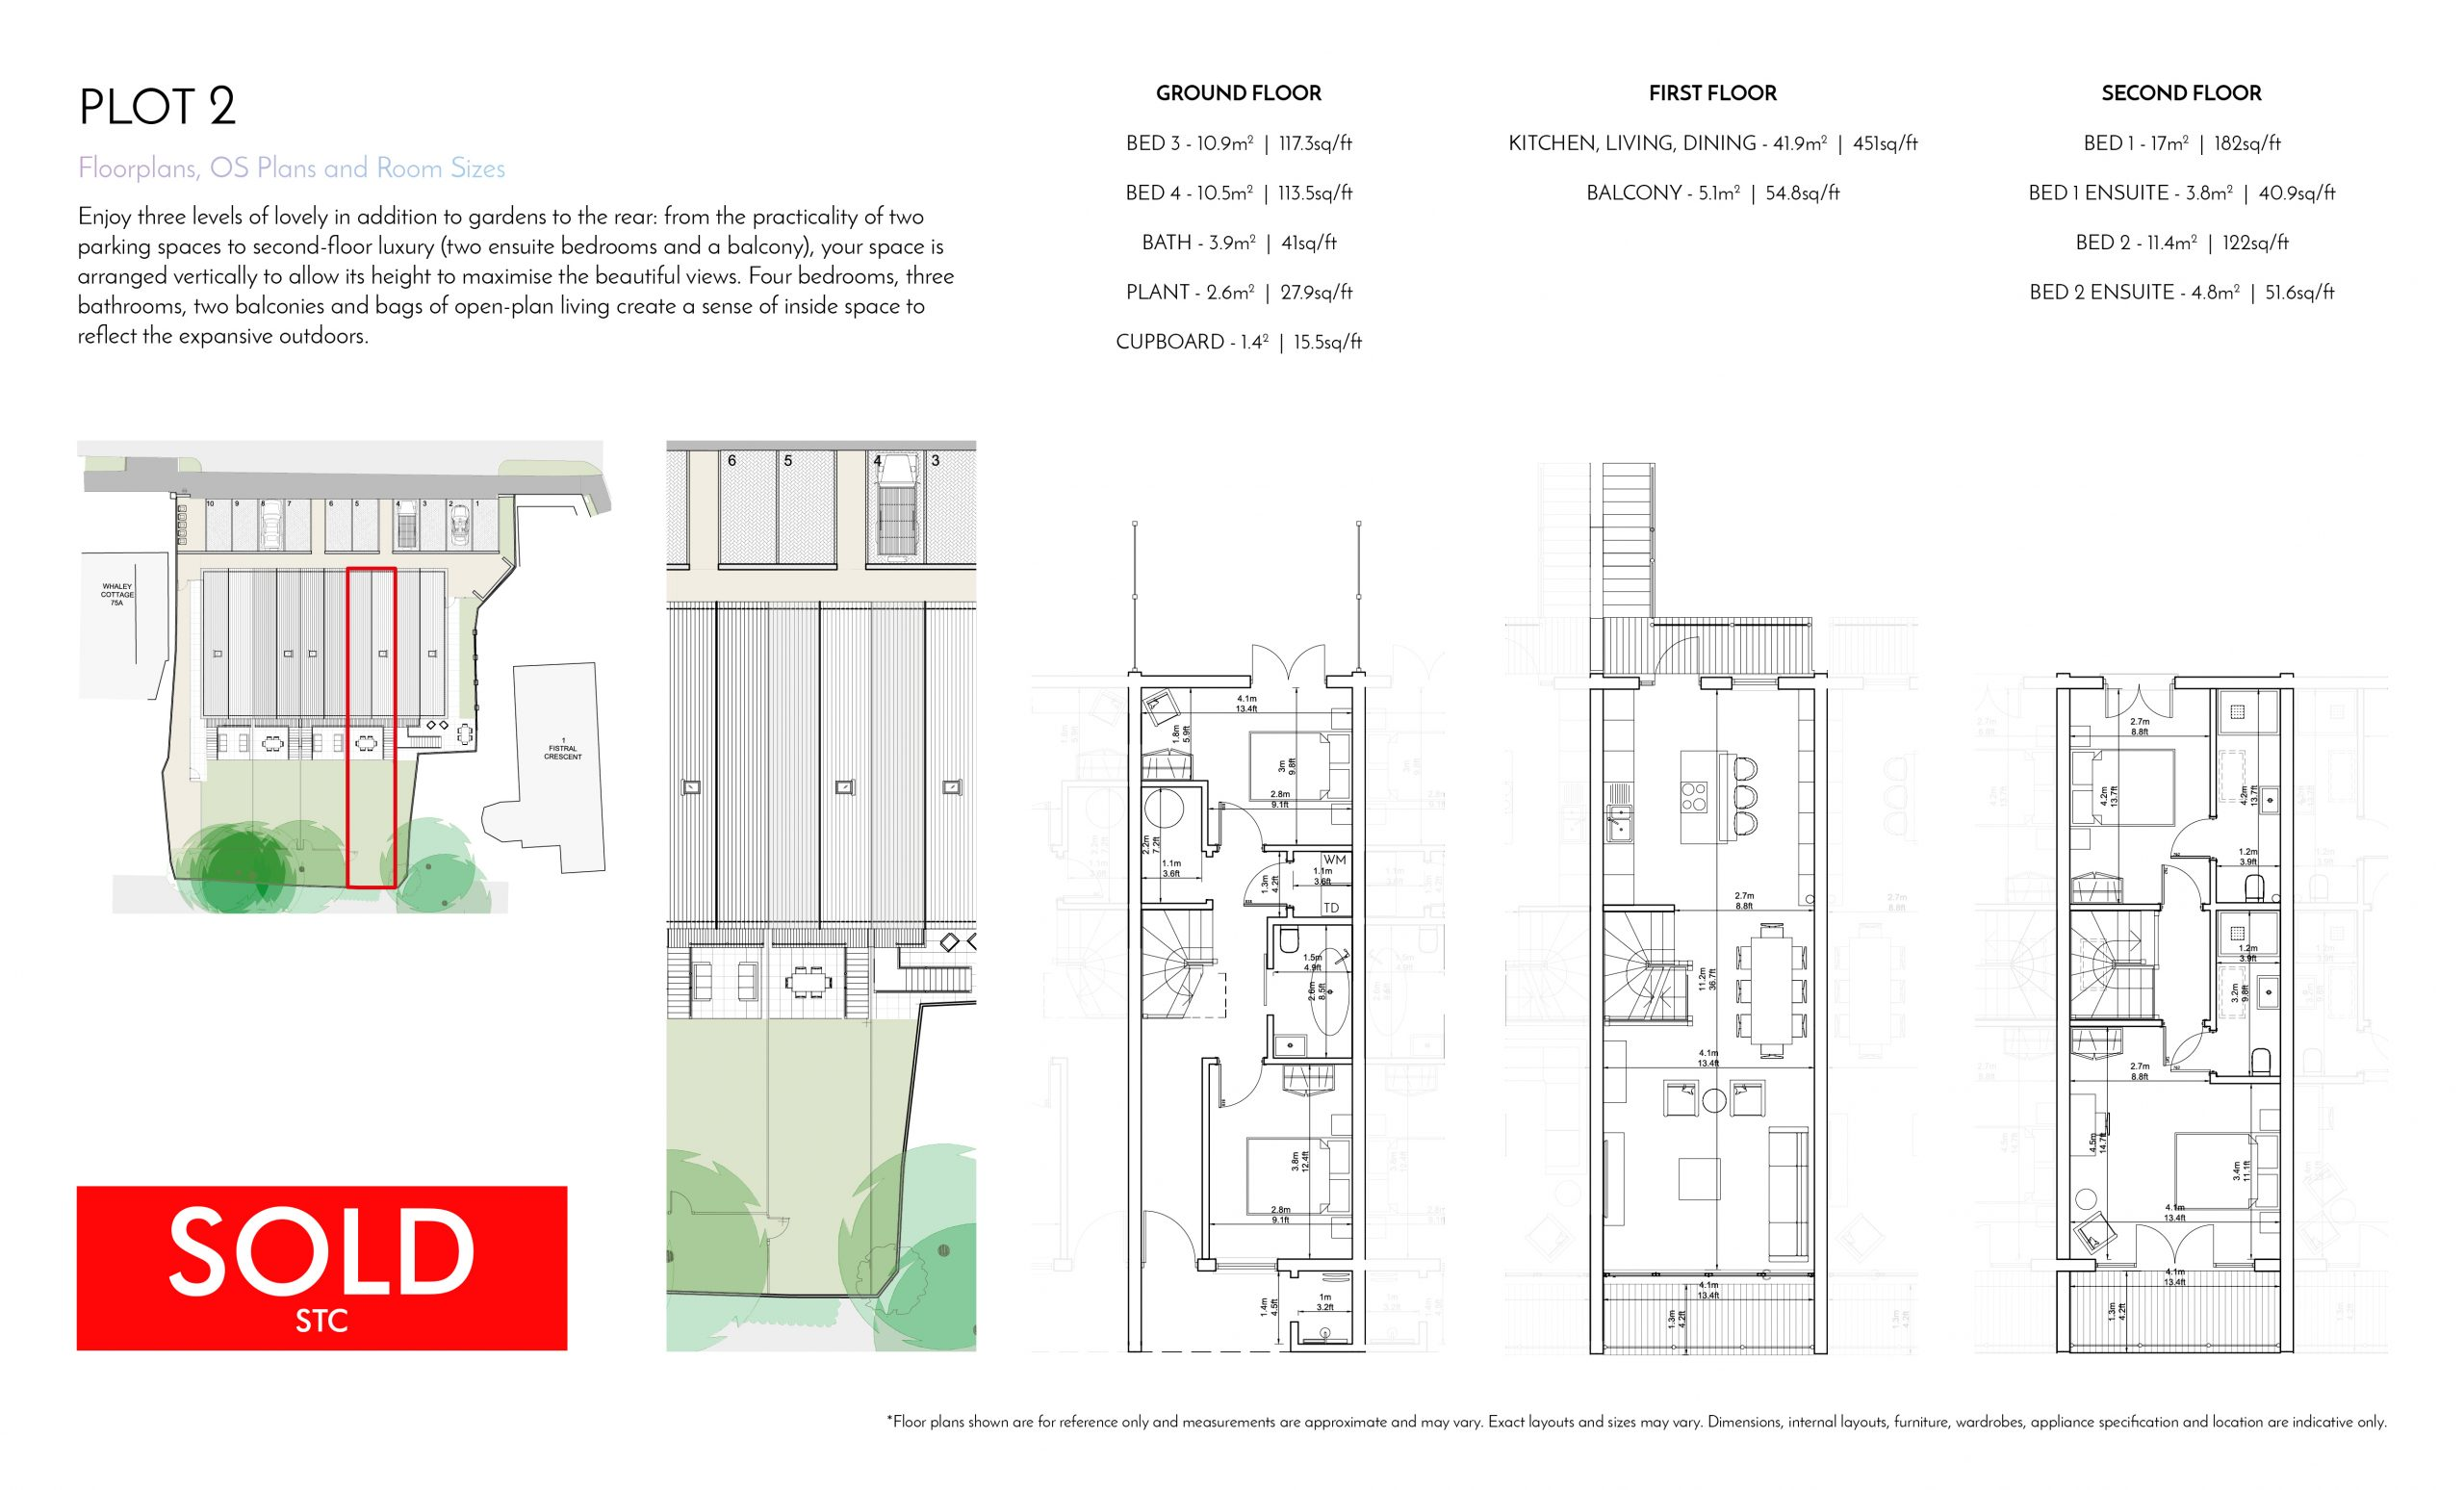 Stephens and Stephens Developers Breakwater Pentire Newquay Cornwall Floorplans Plot 2 SOLD